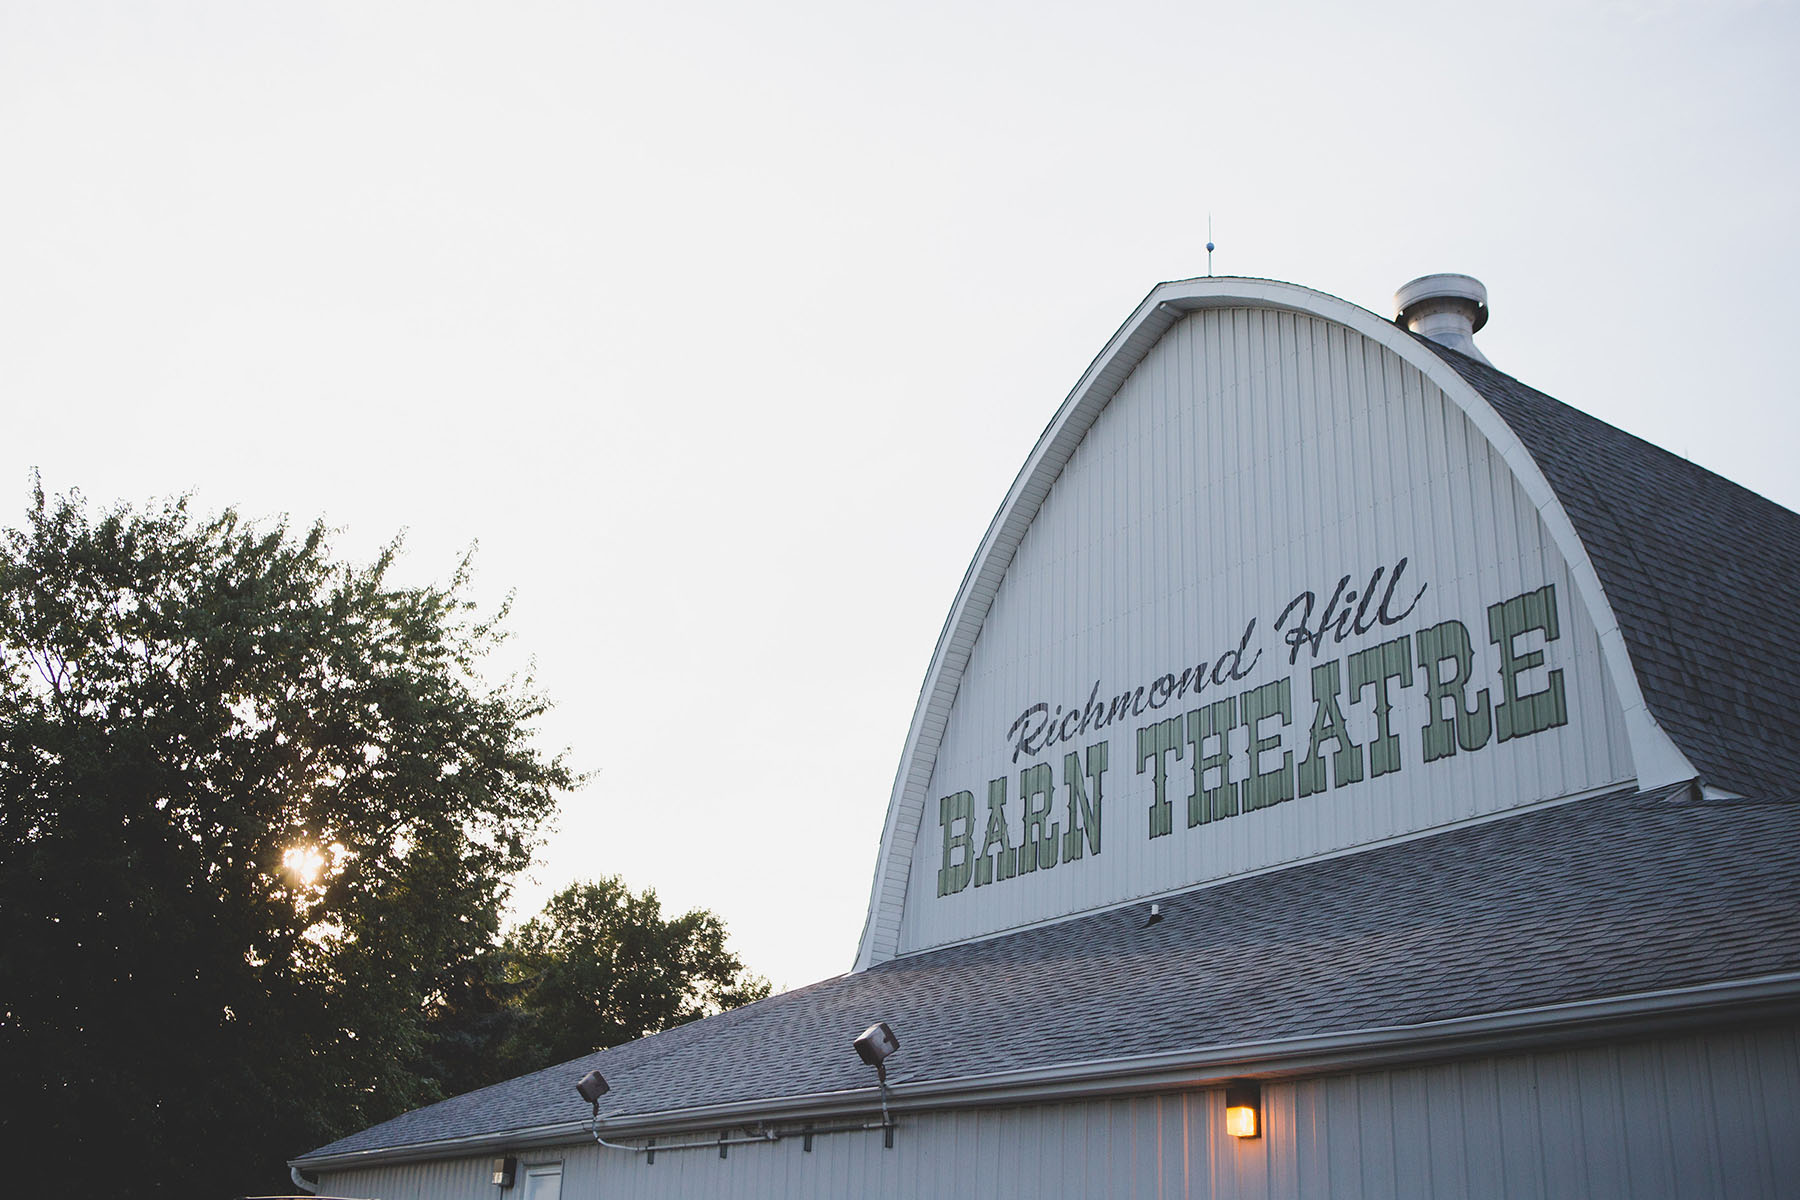 The Richmond Hill Barn Theatre has been the home stage of the Richmond Hill Players since 1968. This renovated Barn now seats 165 audience members in a rare and unique in-the-round environment beneath the original, rustic timbers.